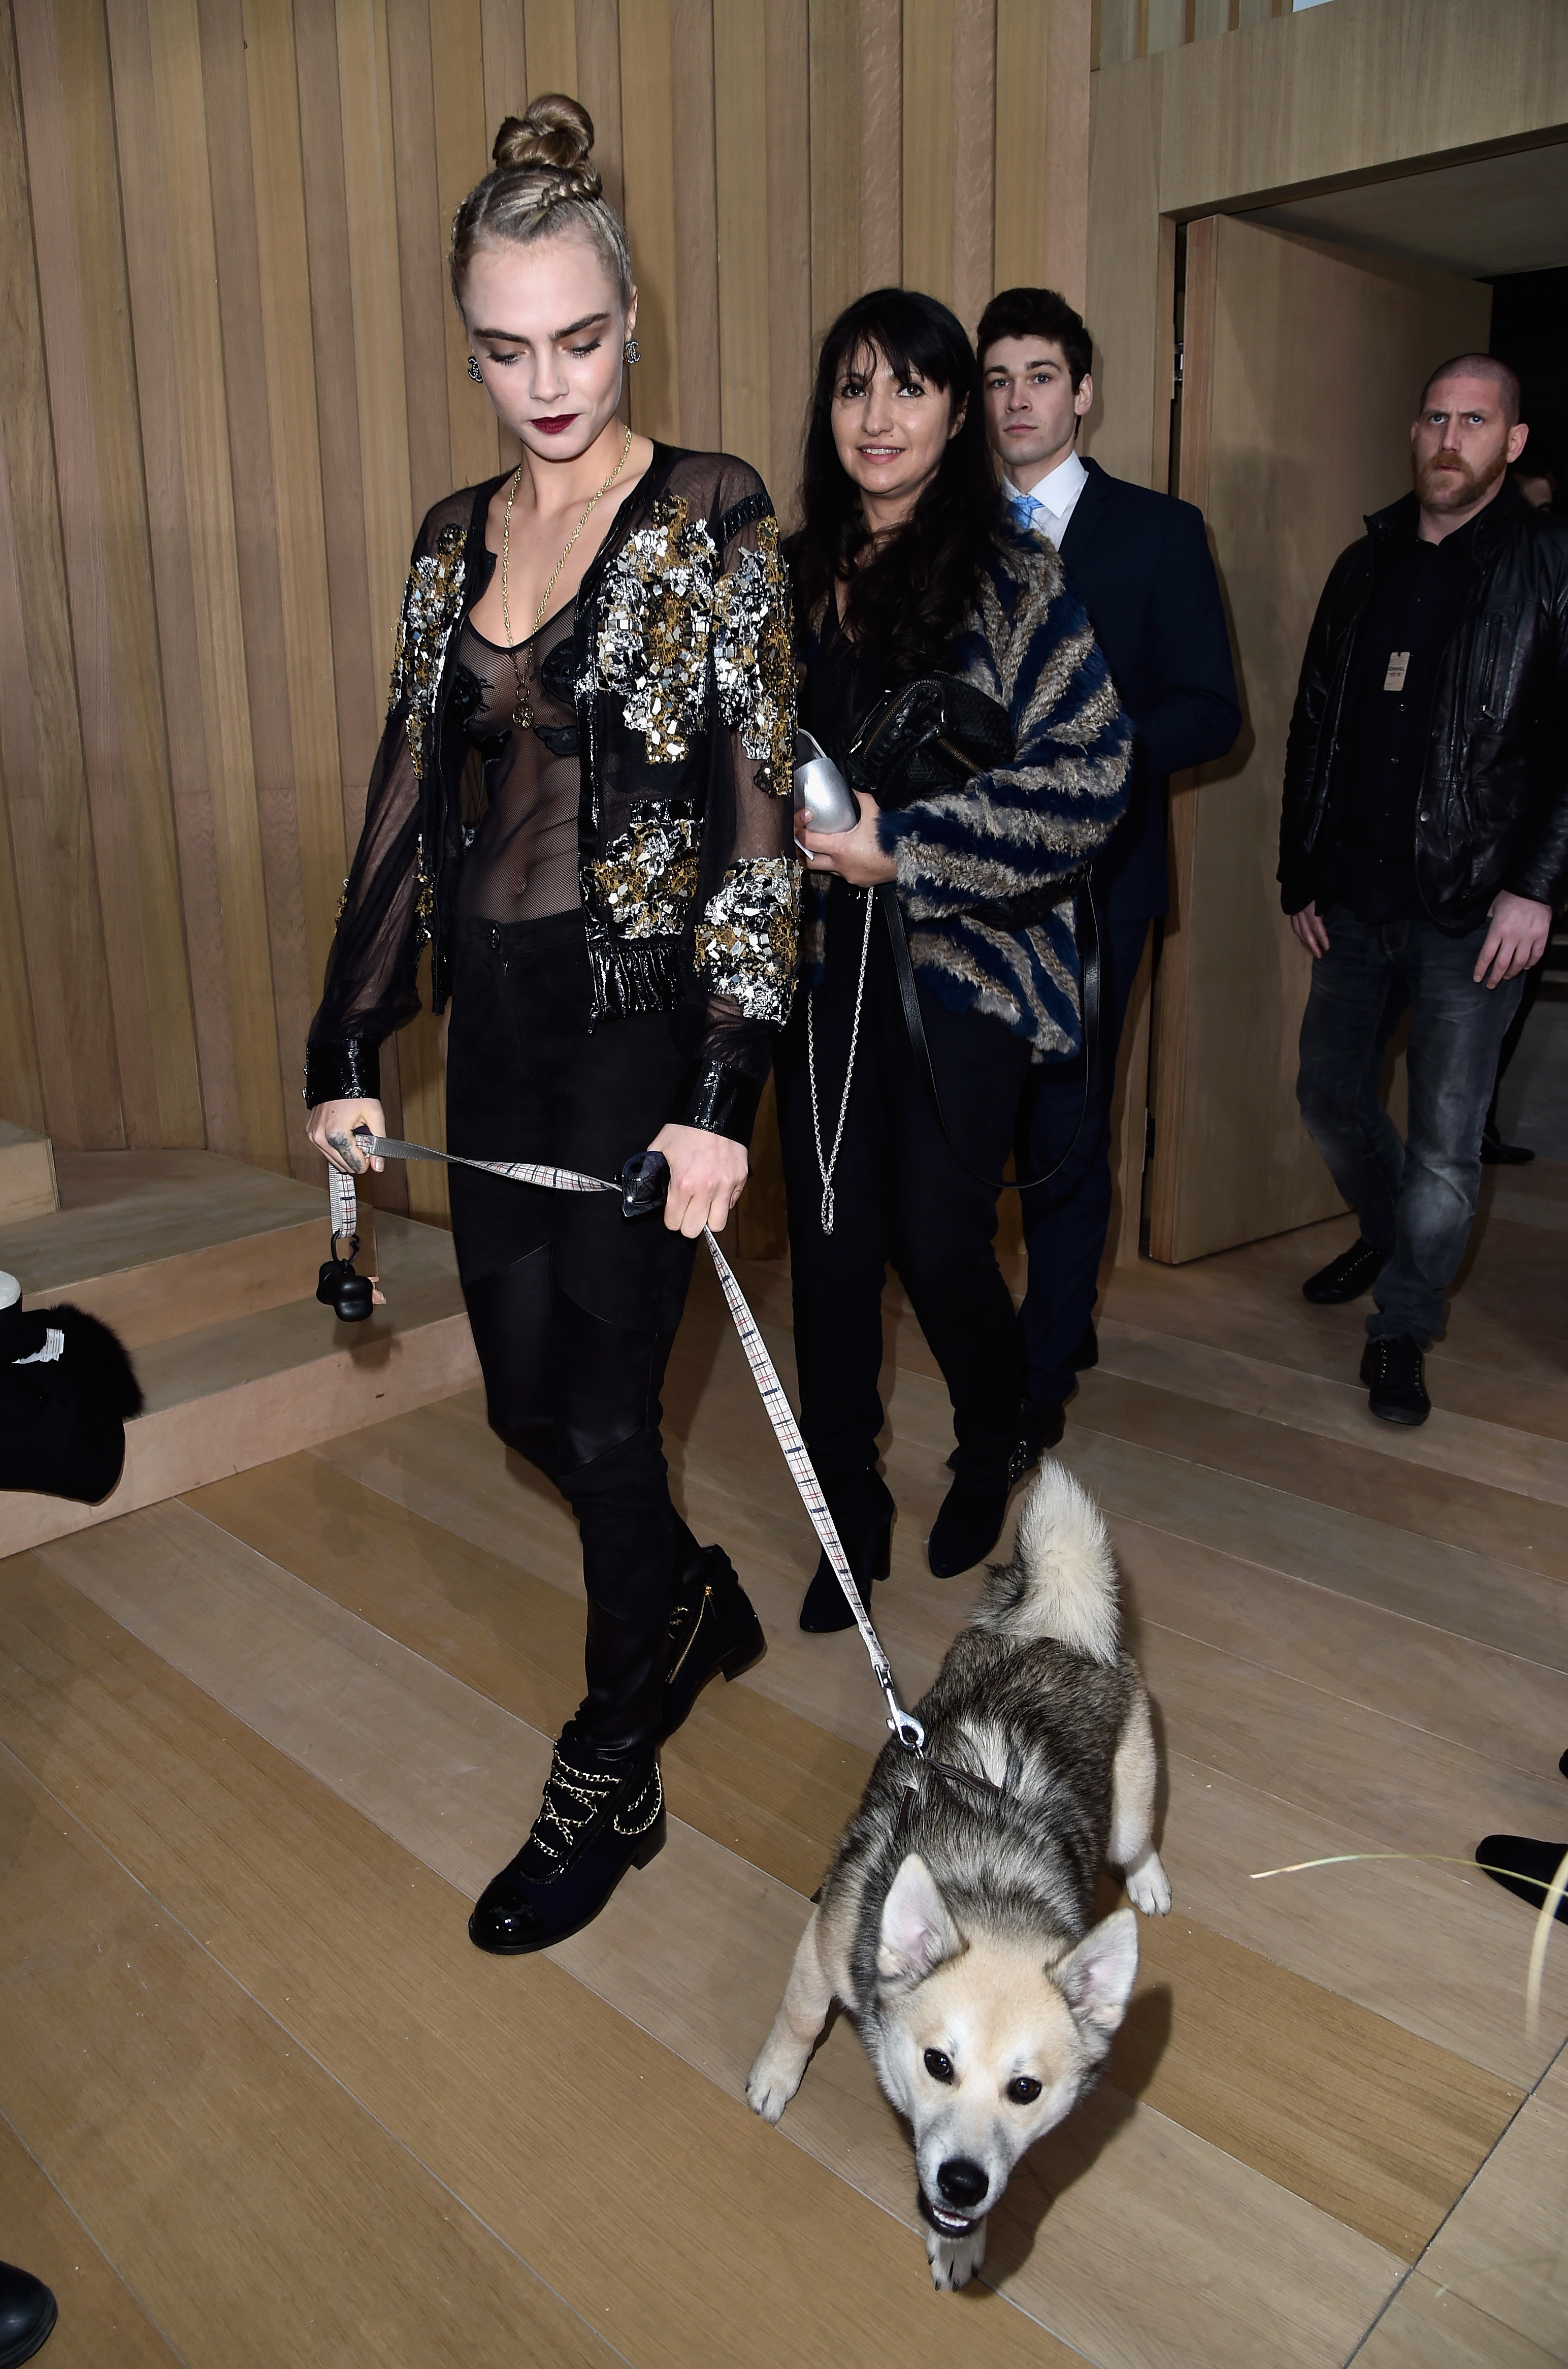 <p>Few spectacles are as elegant as guests gathering for a Chanel show, and the haute couture spring/summer 2016 collection was no exception.<br /><br />Diane Kruger, Gwyneth Paltrow, Inès de la Fressange and Clémence Poésy sat alongside bright young things Ellie Bamber and Alma Jodorowsky, but the guest who made the biggest impression was Leo, Cara Delevingne's excitable puppy.<br /><br />Not only was he granted the privilege of a front row seat, but the pup also got taken backstage. </p><p>No word yet on how Choupette felt about having to share Karl's affections. </p>